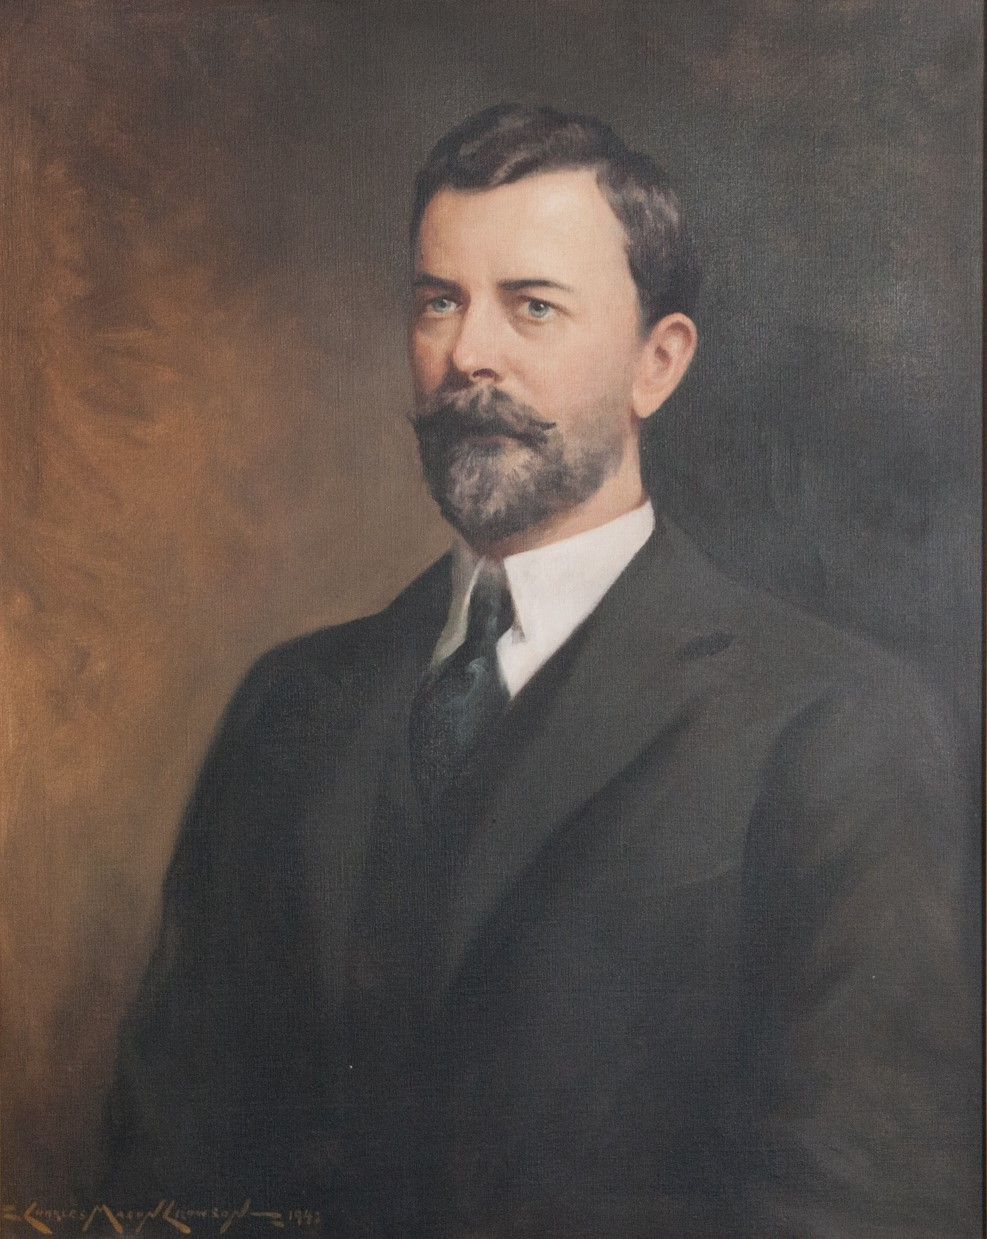 Andrew Charles Moore, by Charles M. Crowson, 1943